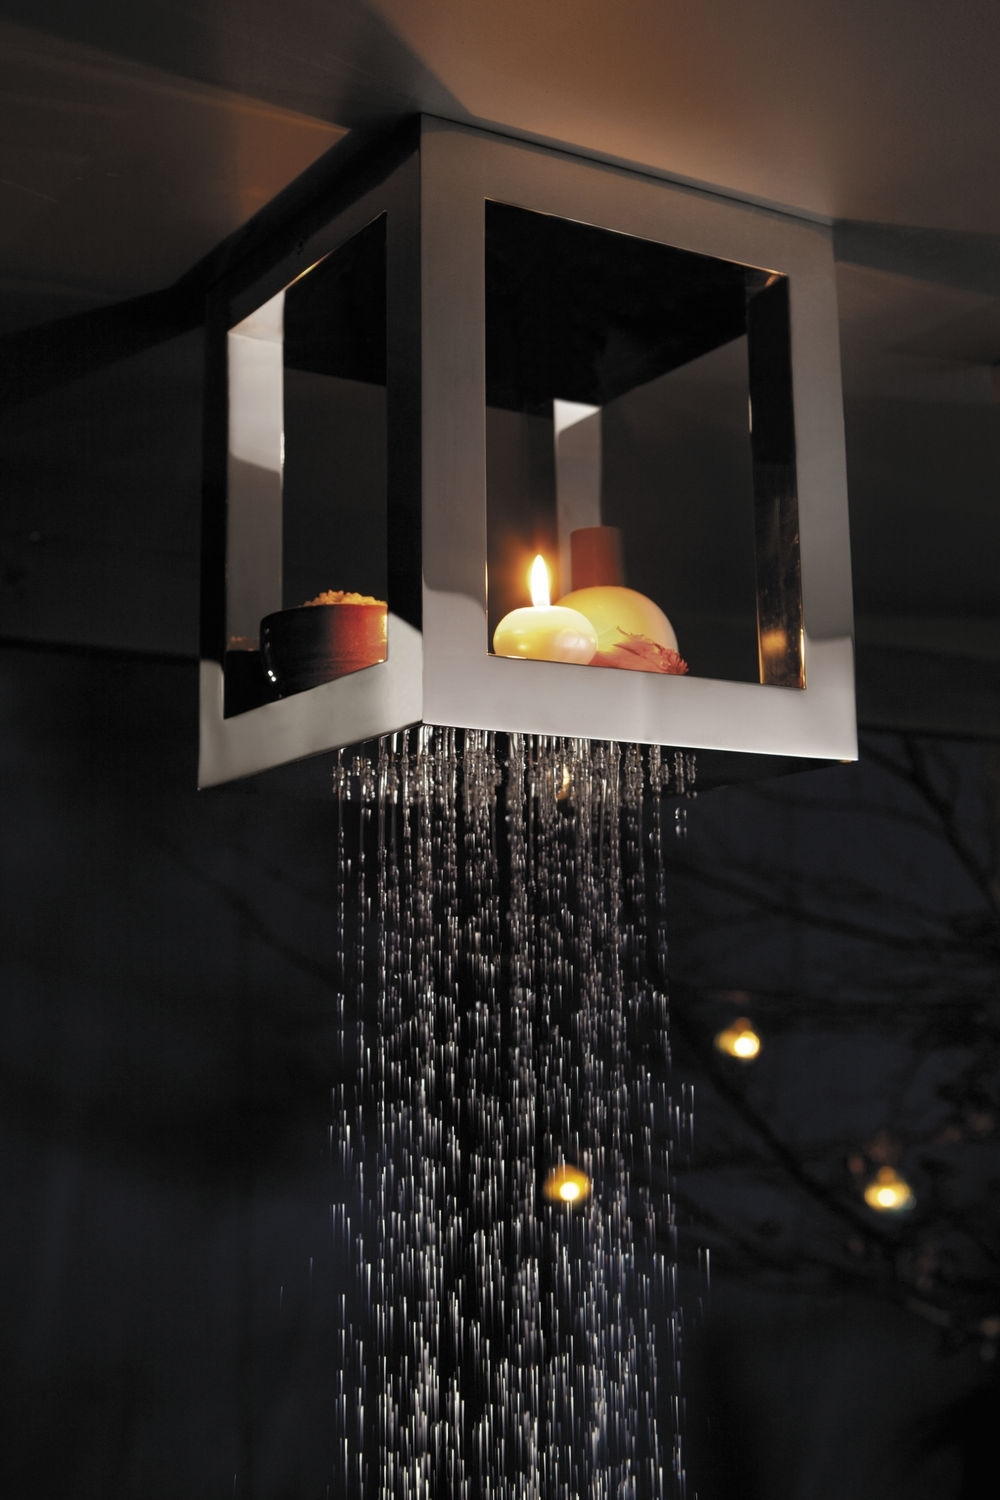 ceiling mounted sink faucet ceiling mounted sink faucet home decor ceiling mount rainfall shower head bathroom faucets 1000 x 1500